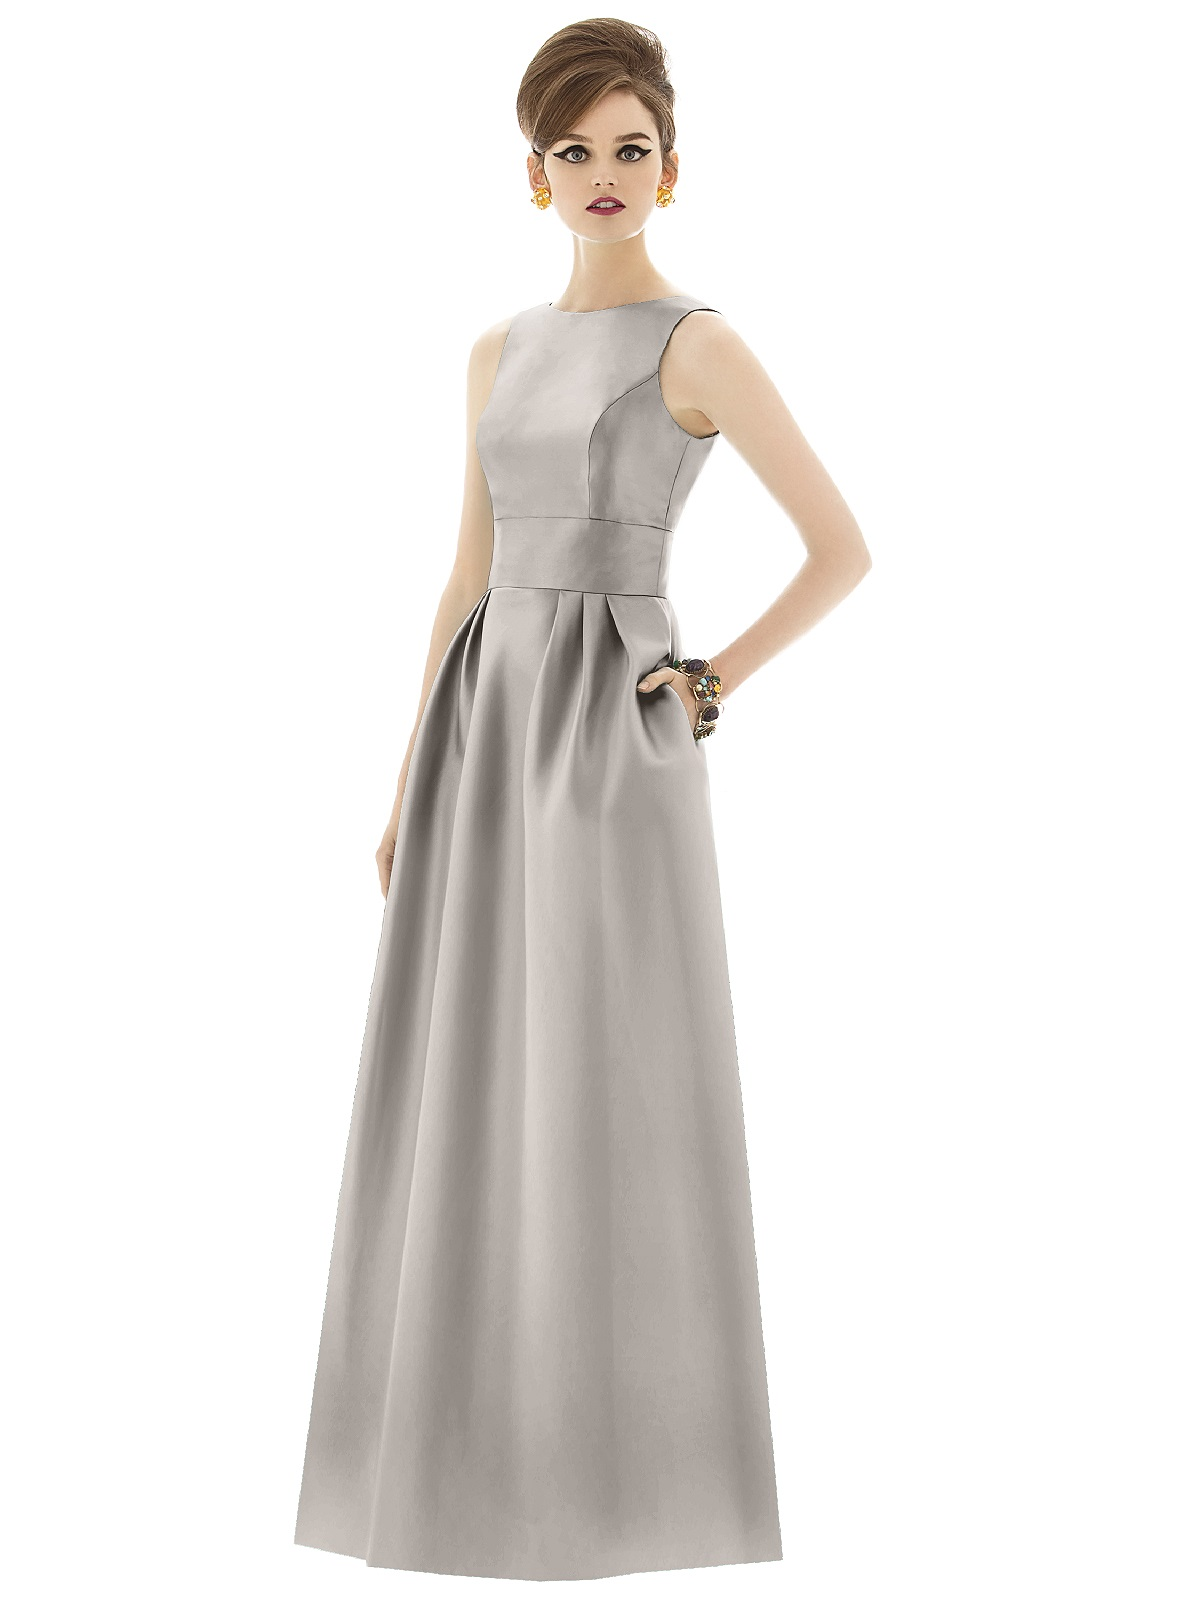 Alfred sung bridesmaid dressesalfred sung dresses d 661the dessy alfred sung bridesmaid dresses alfred sung d661 loading zoom ombrellifo Images